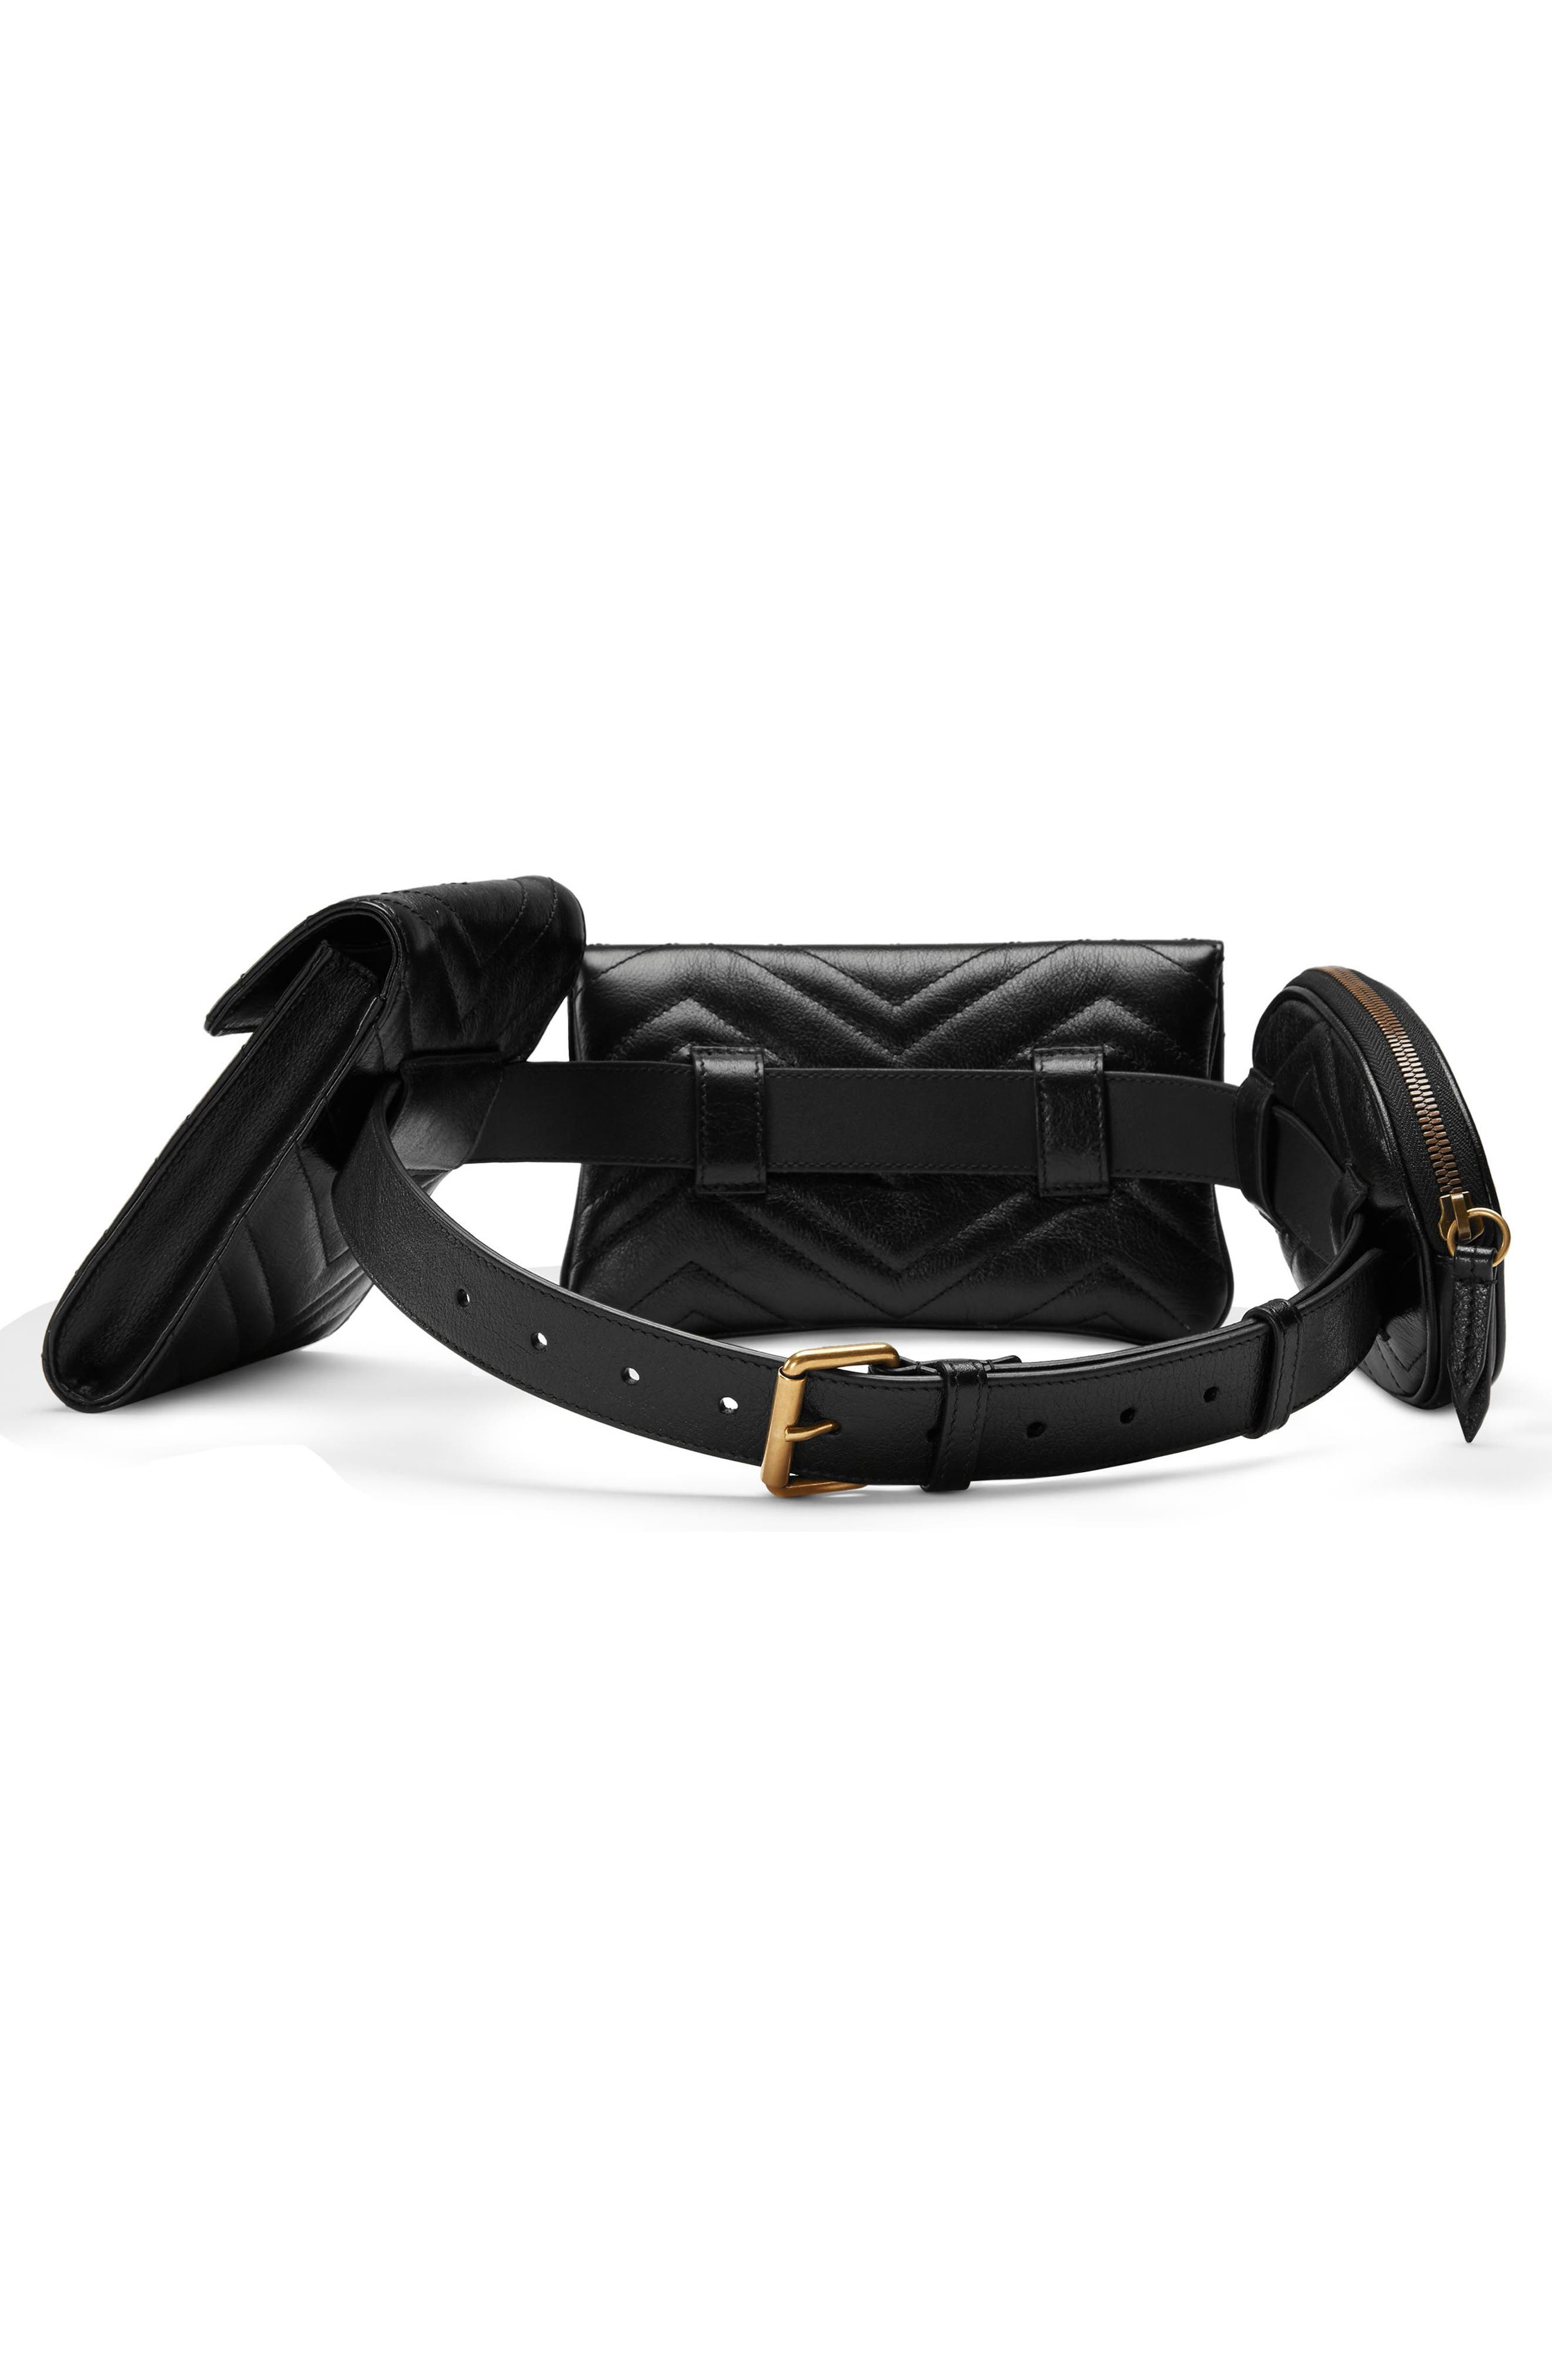 GG Marmont 2.0 Matelassé Triple Pouch Leather Belt Bag,                             Alternate thumbnail 2, color,                             001